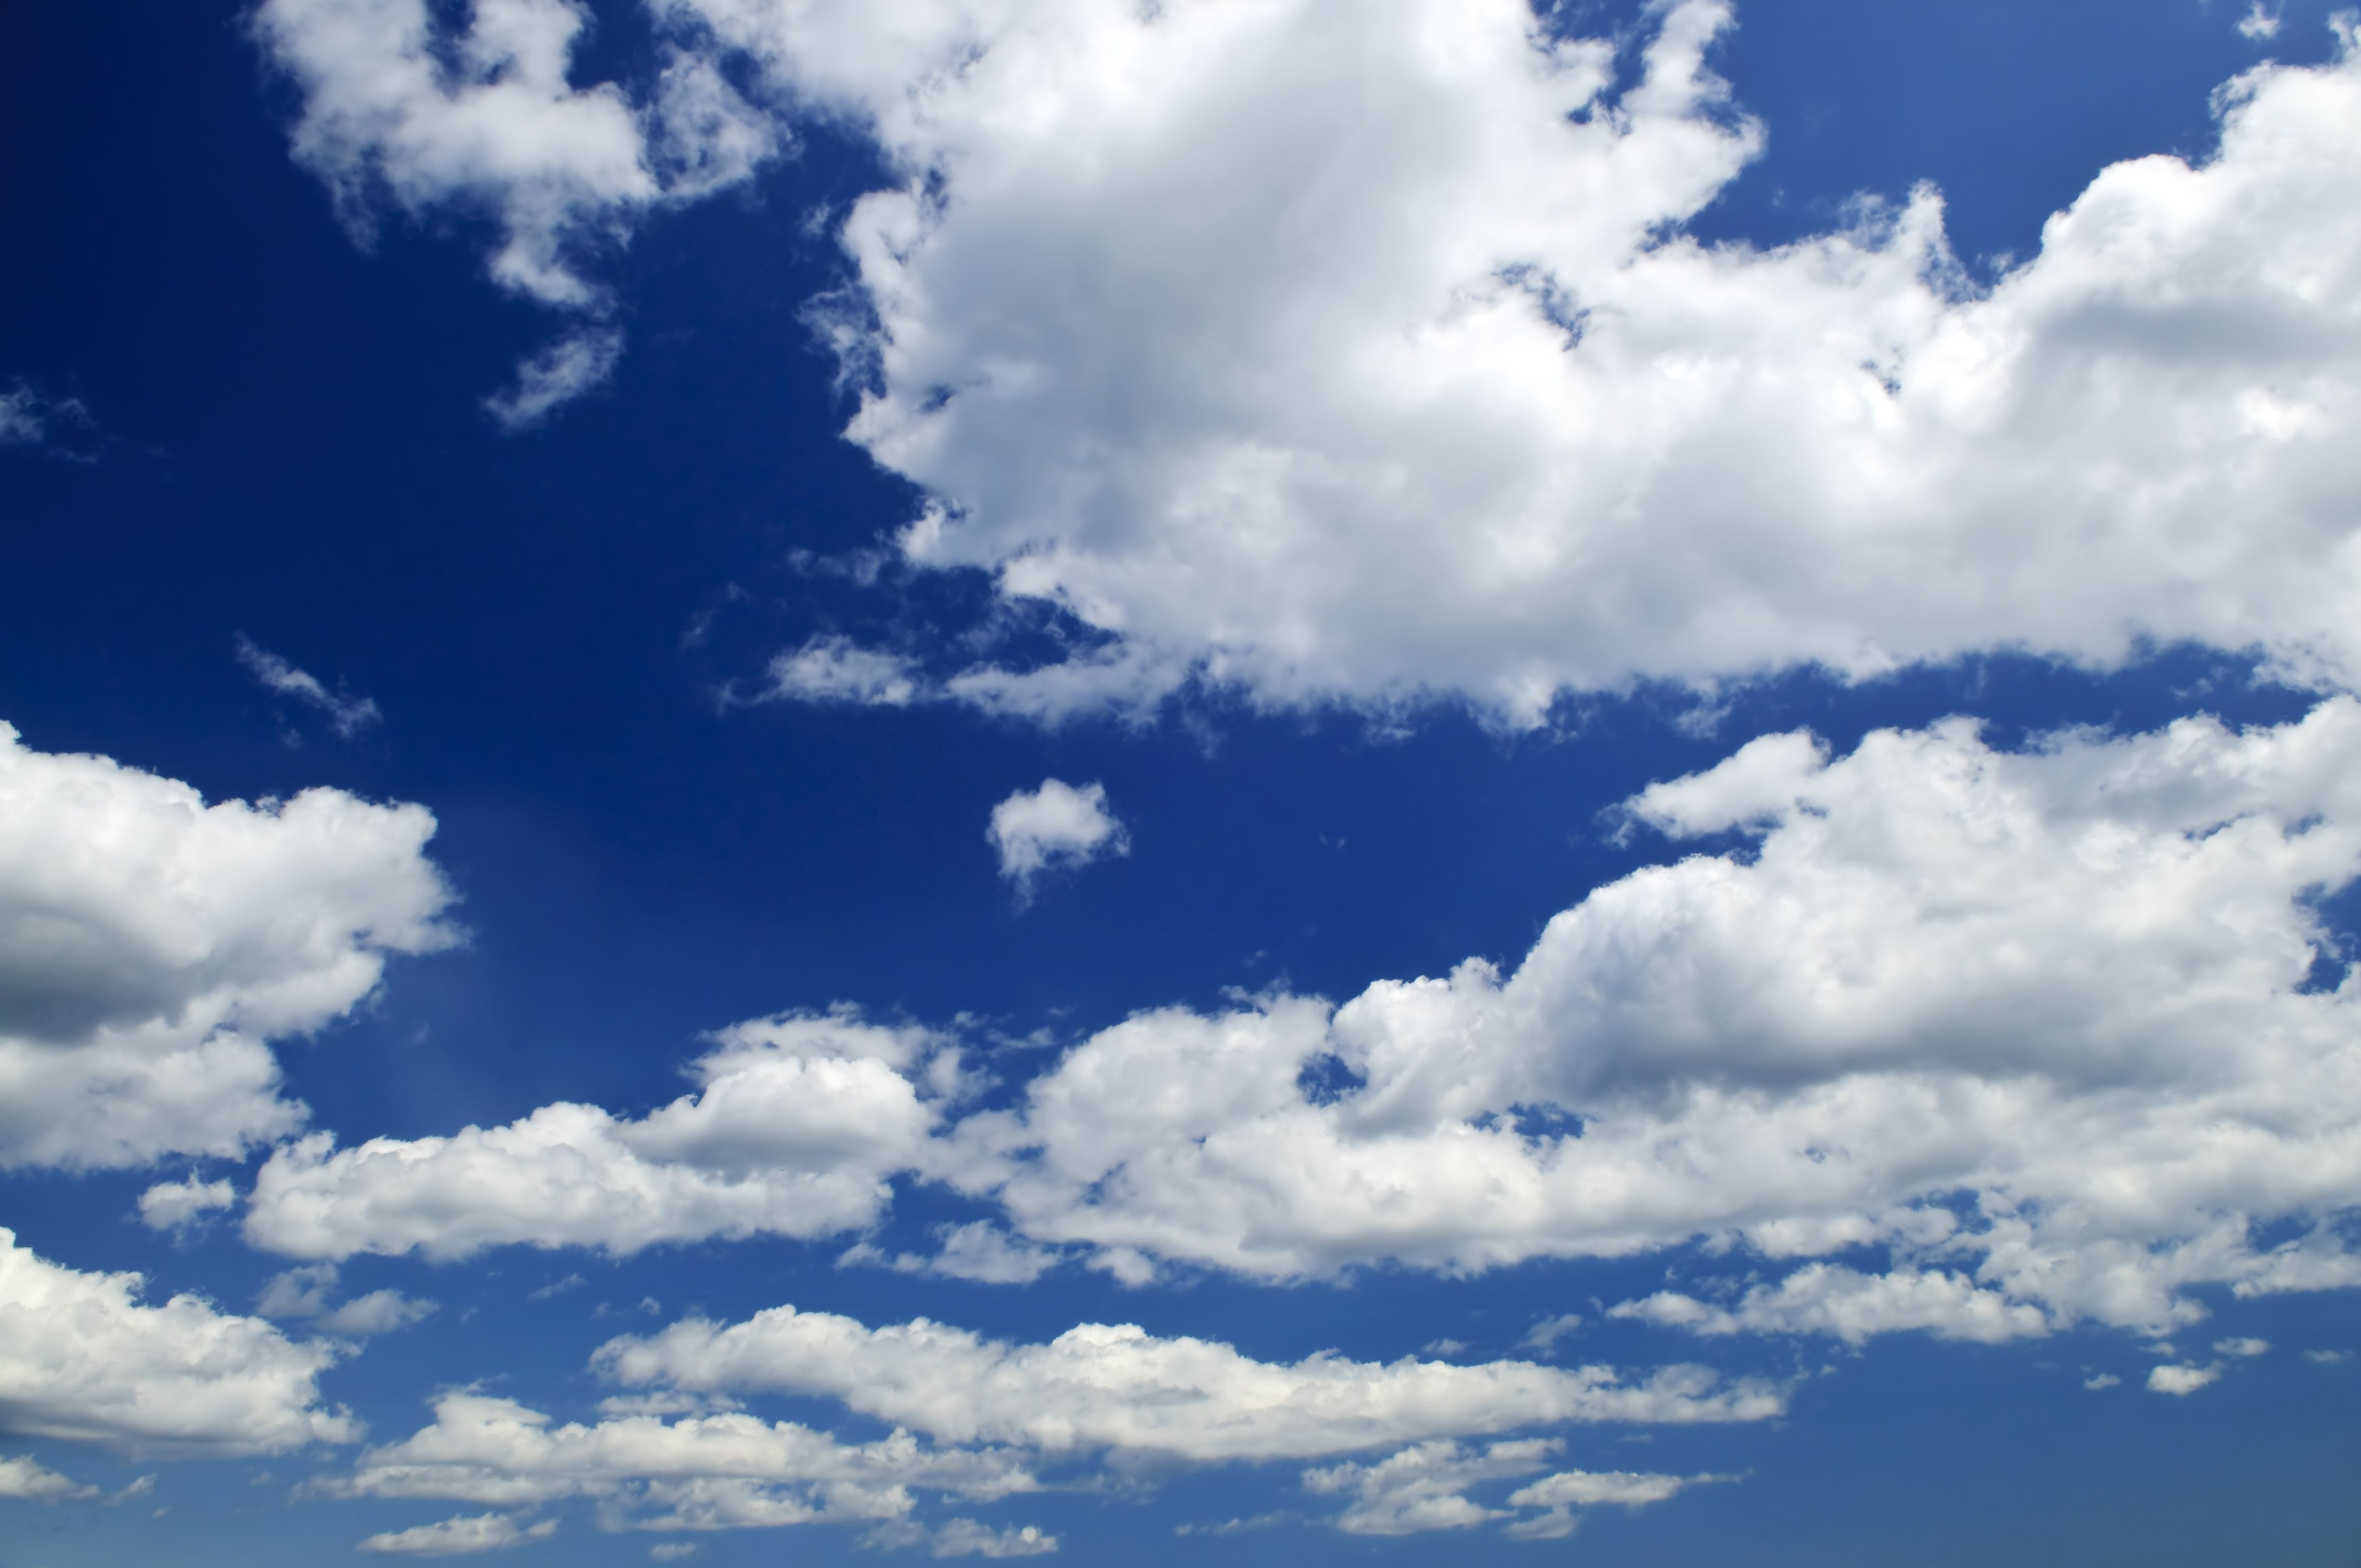 images for > blue sky with white clouds | 232 main | pinterest